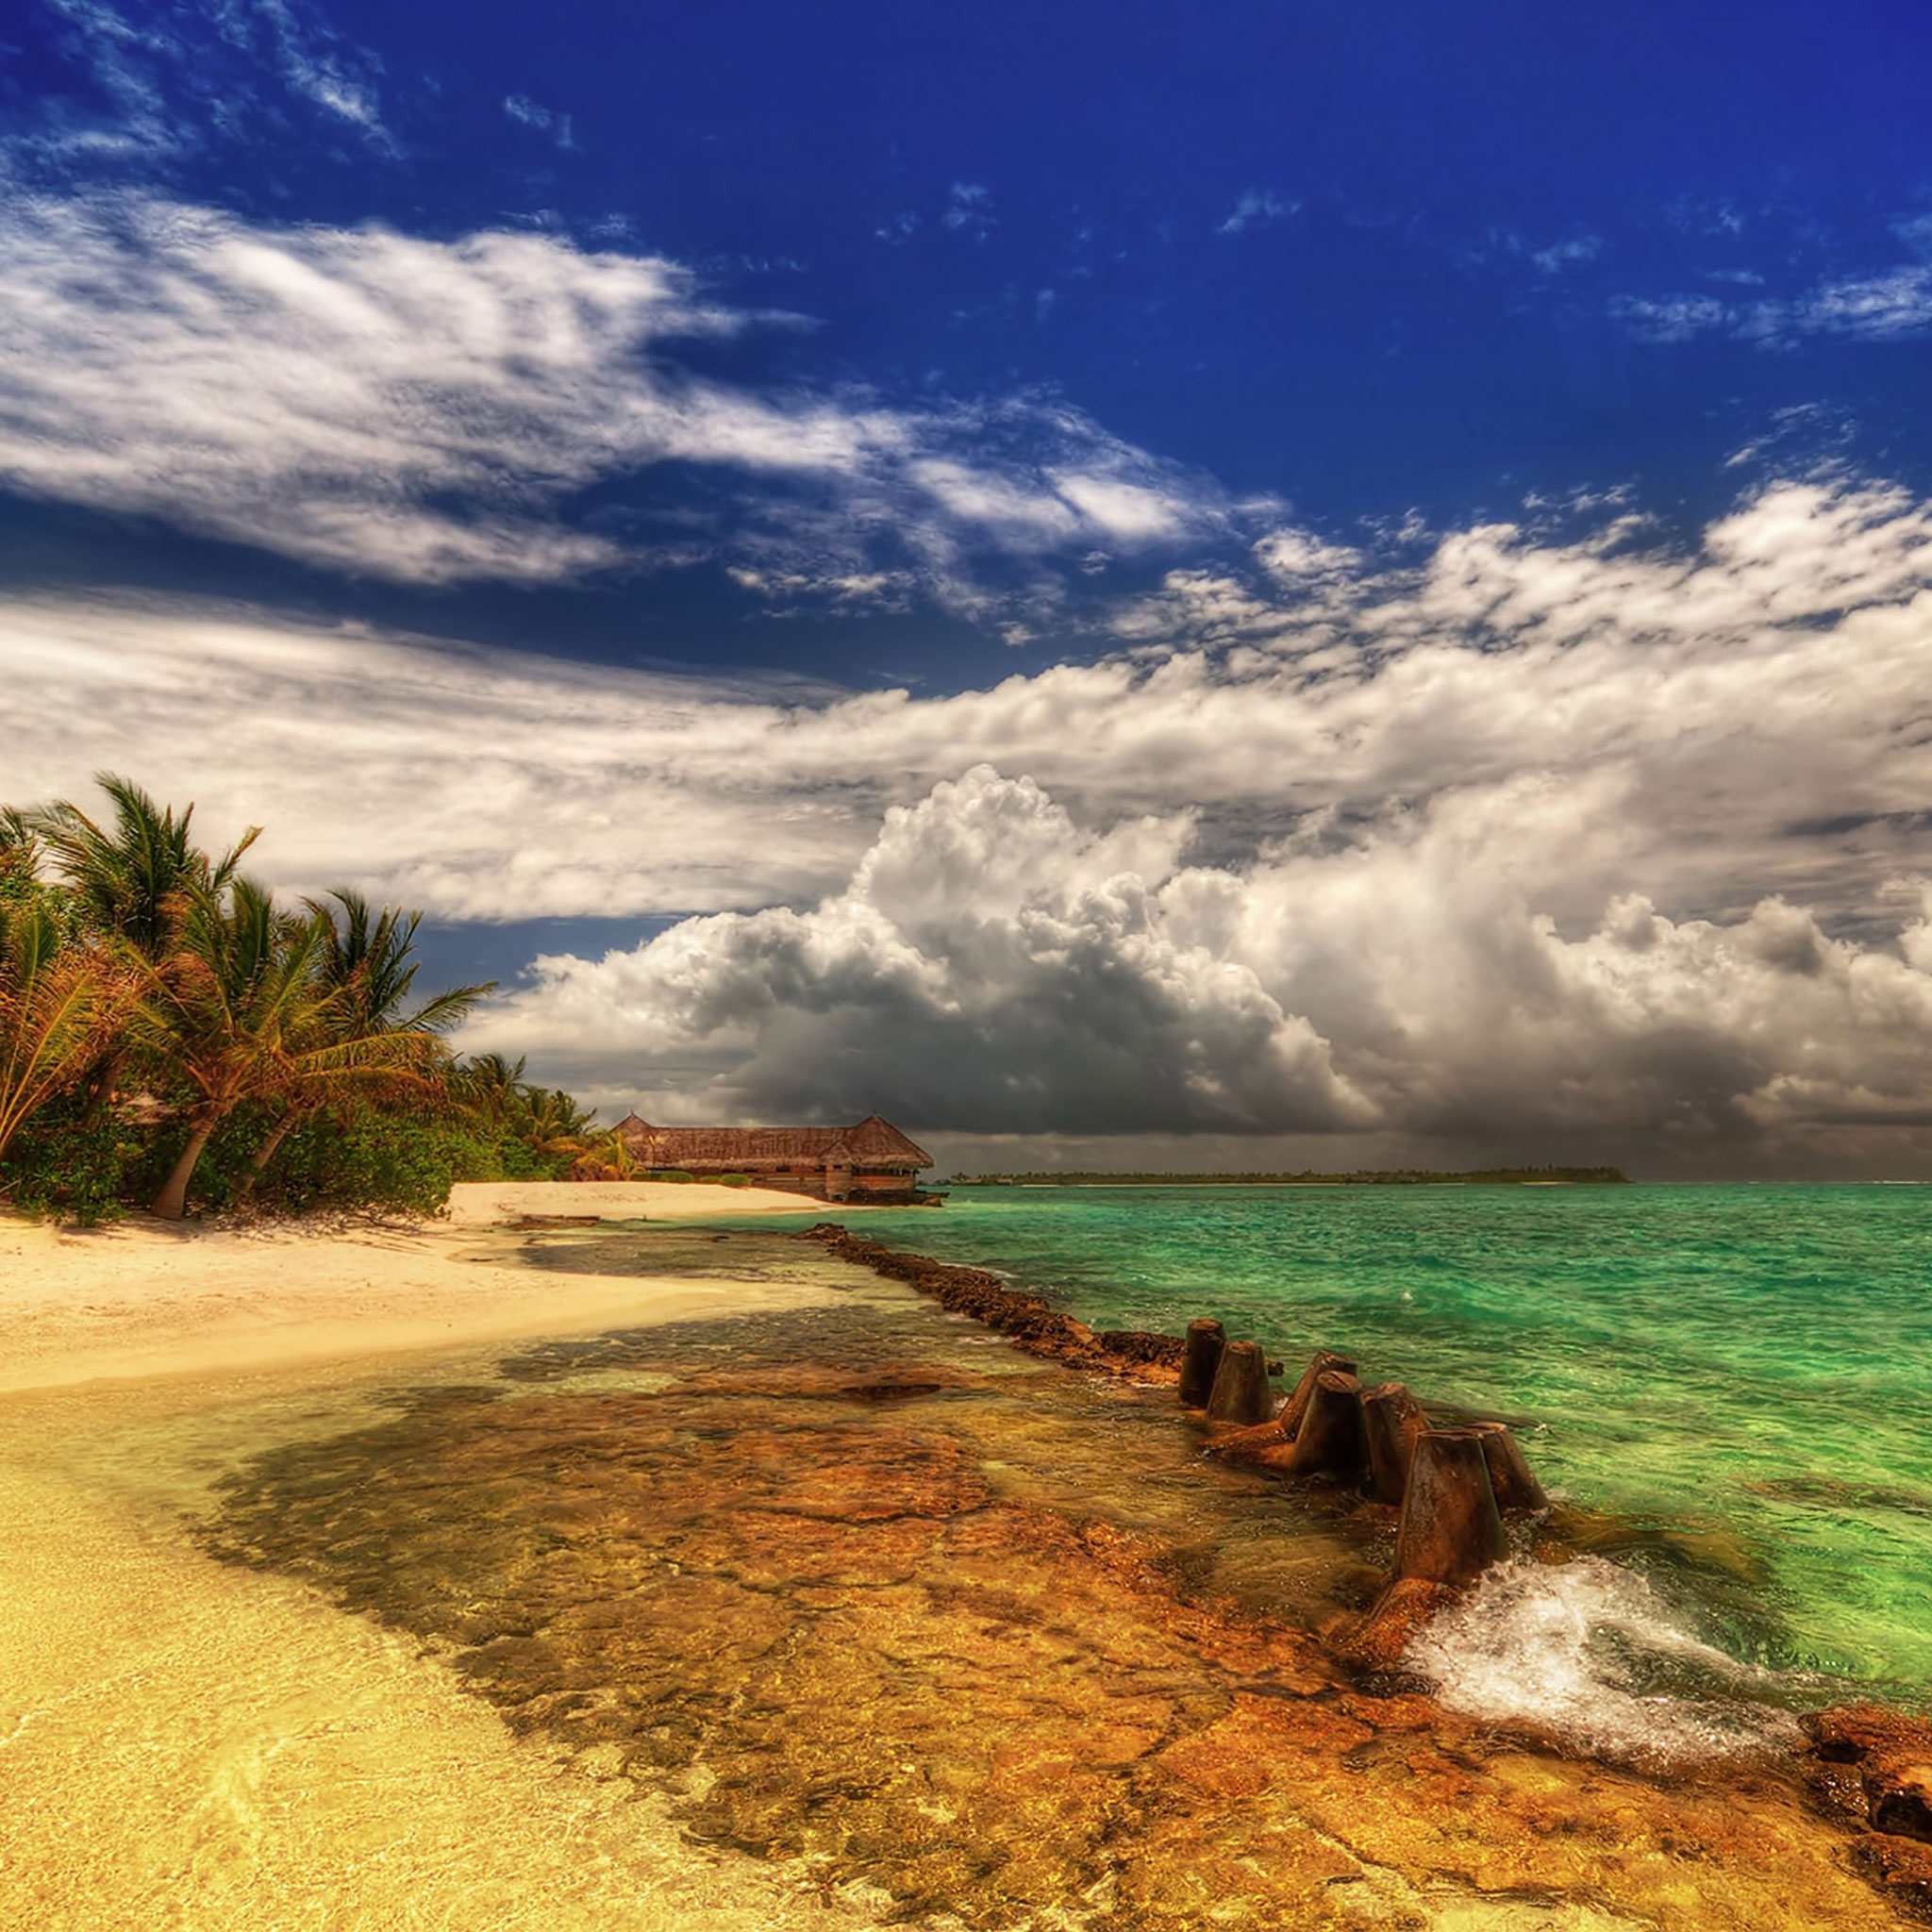 hd landscape wallpapers ipad: 30 HD Tropical Beach IPad Backgrounds